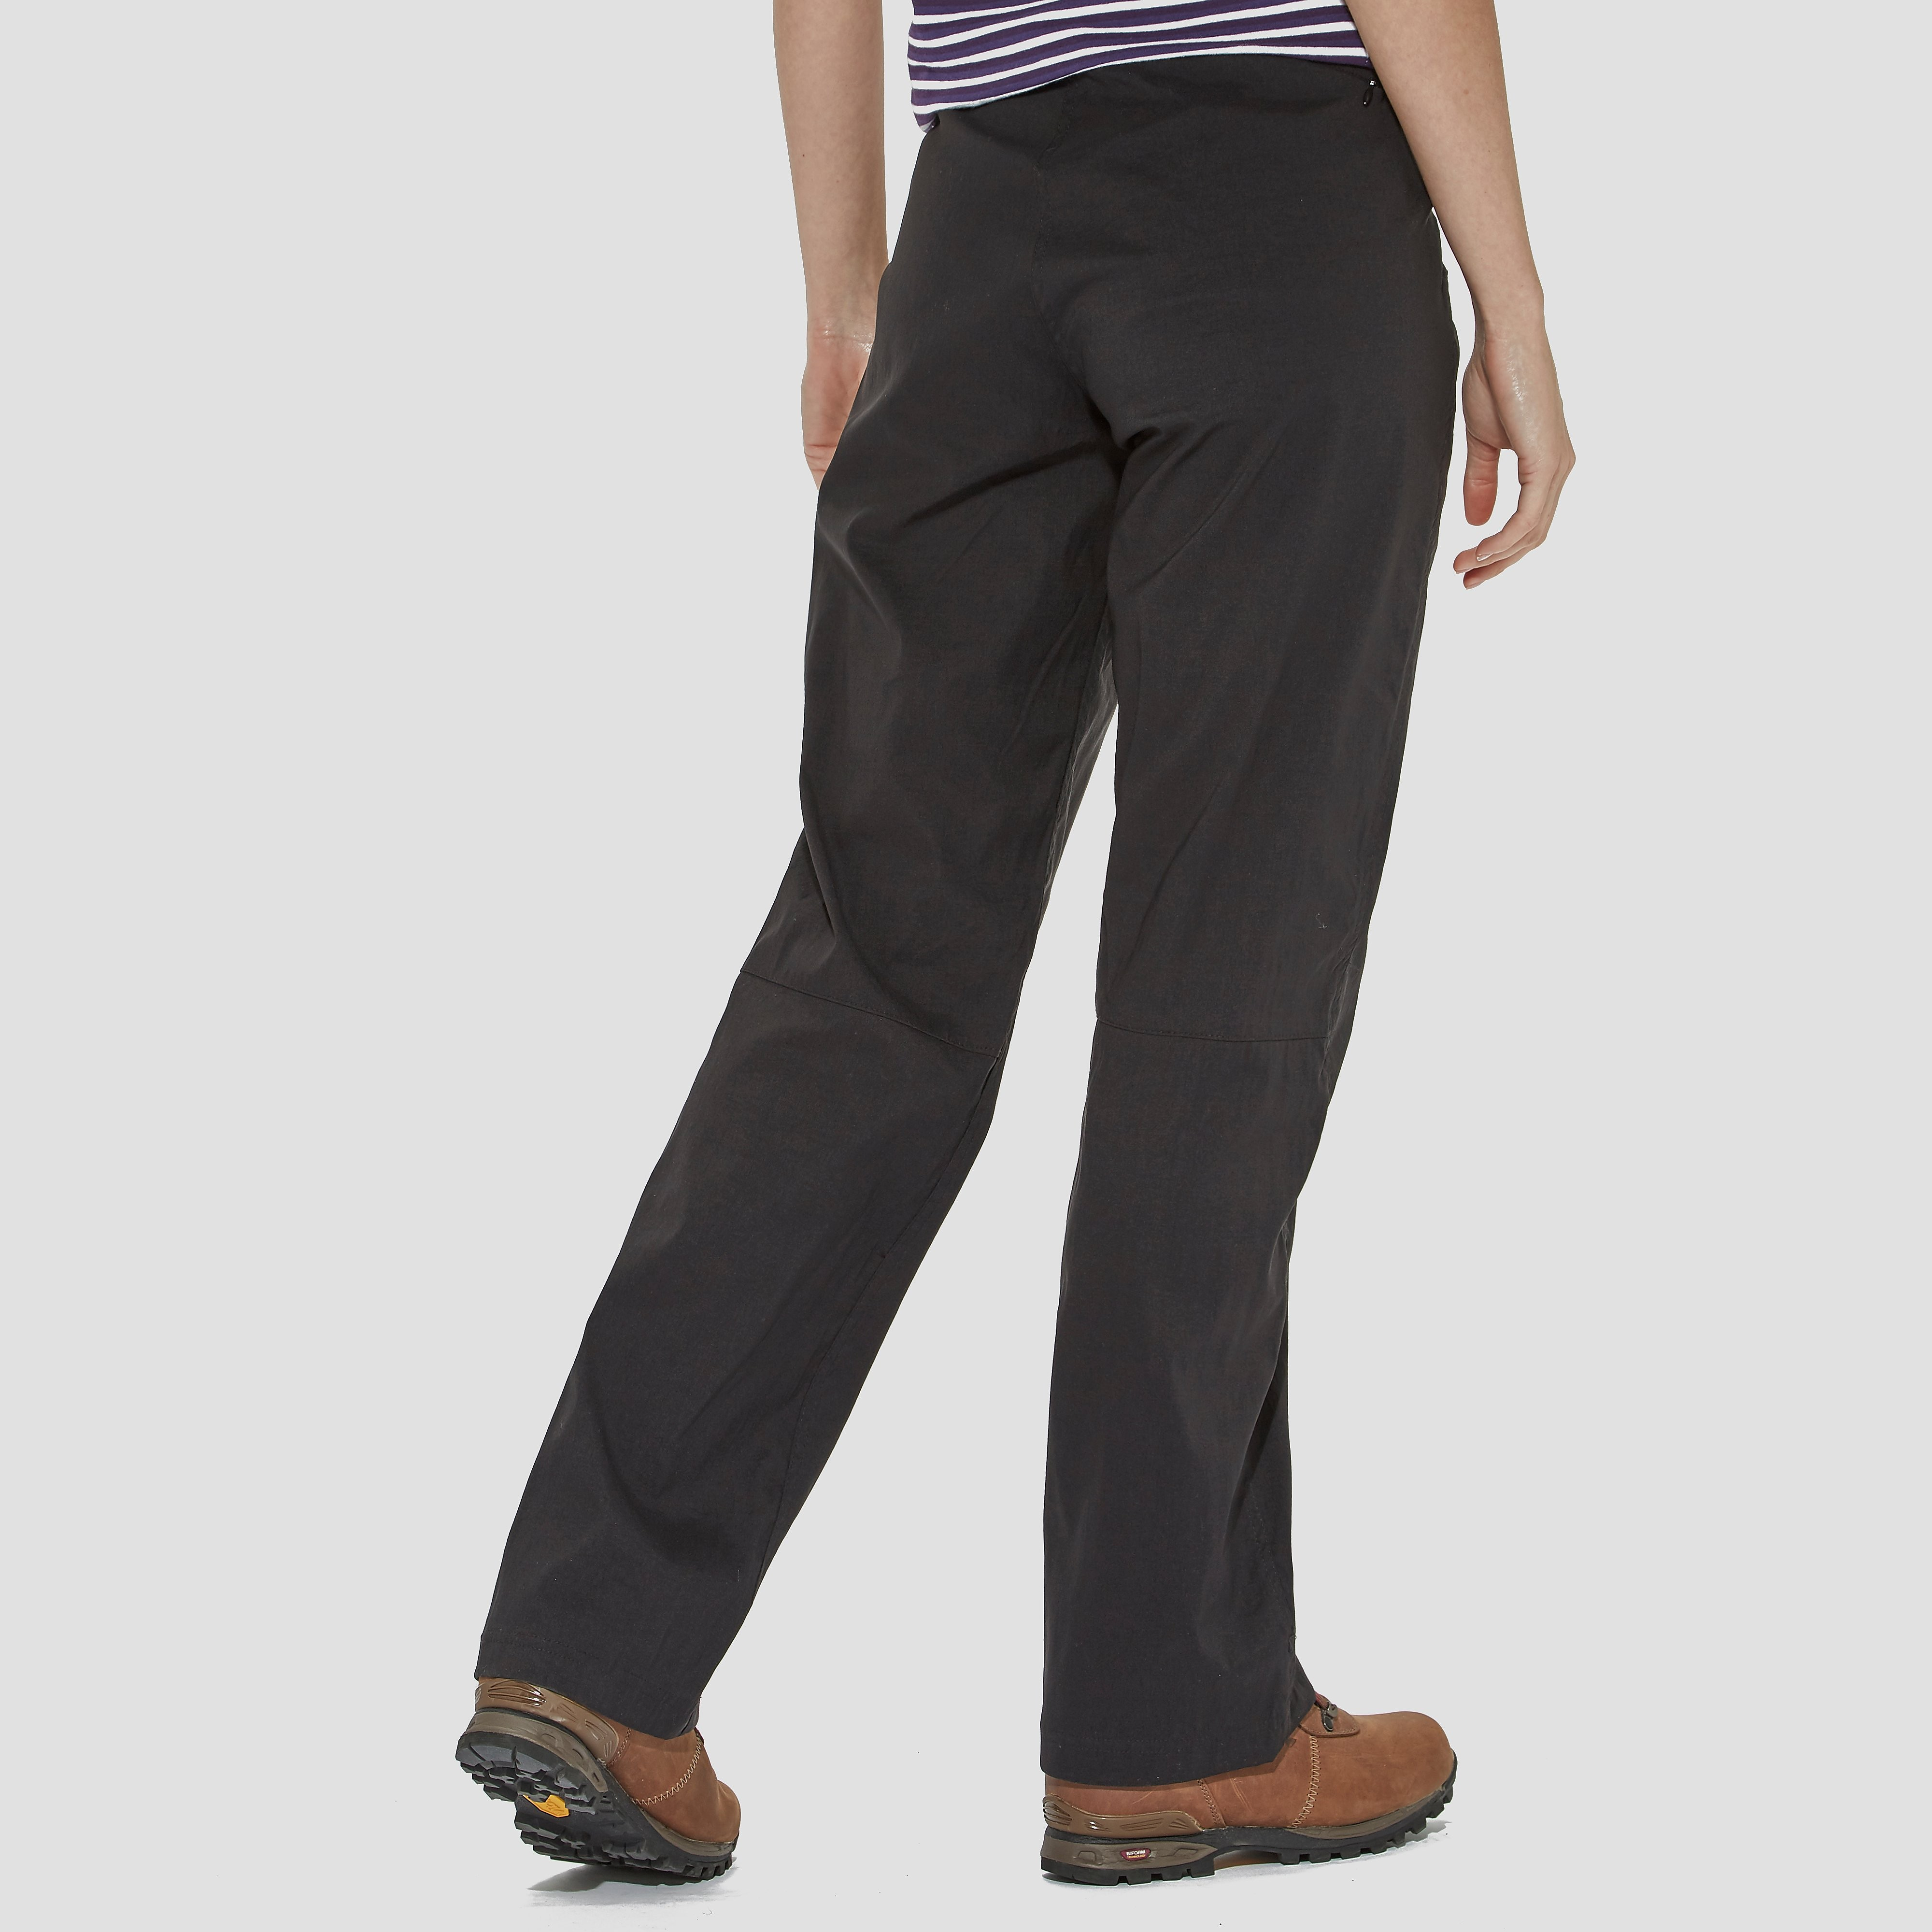 Craghoppers Pro Stretch Women's Walking Trousers